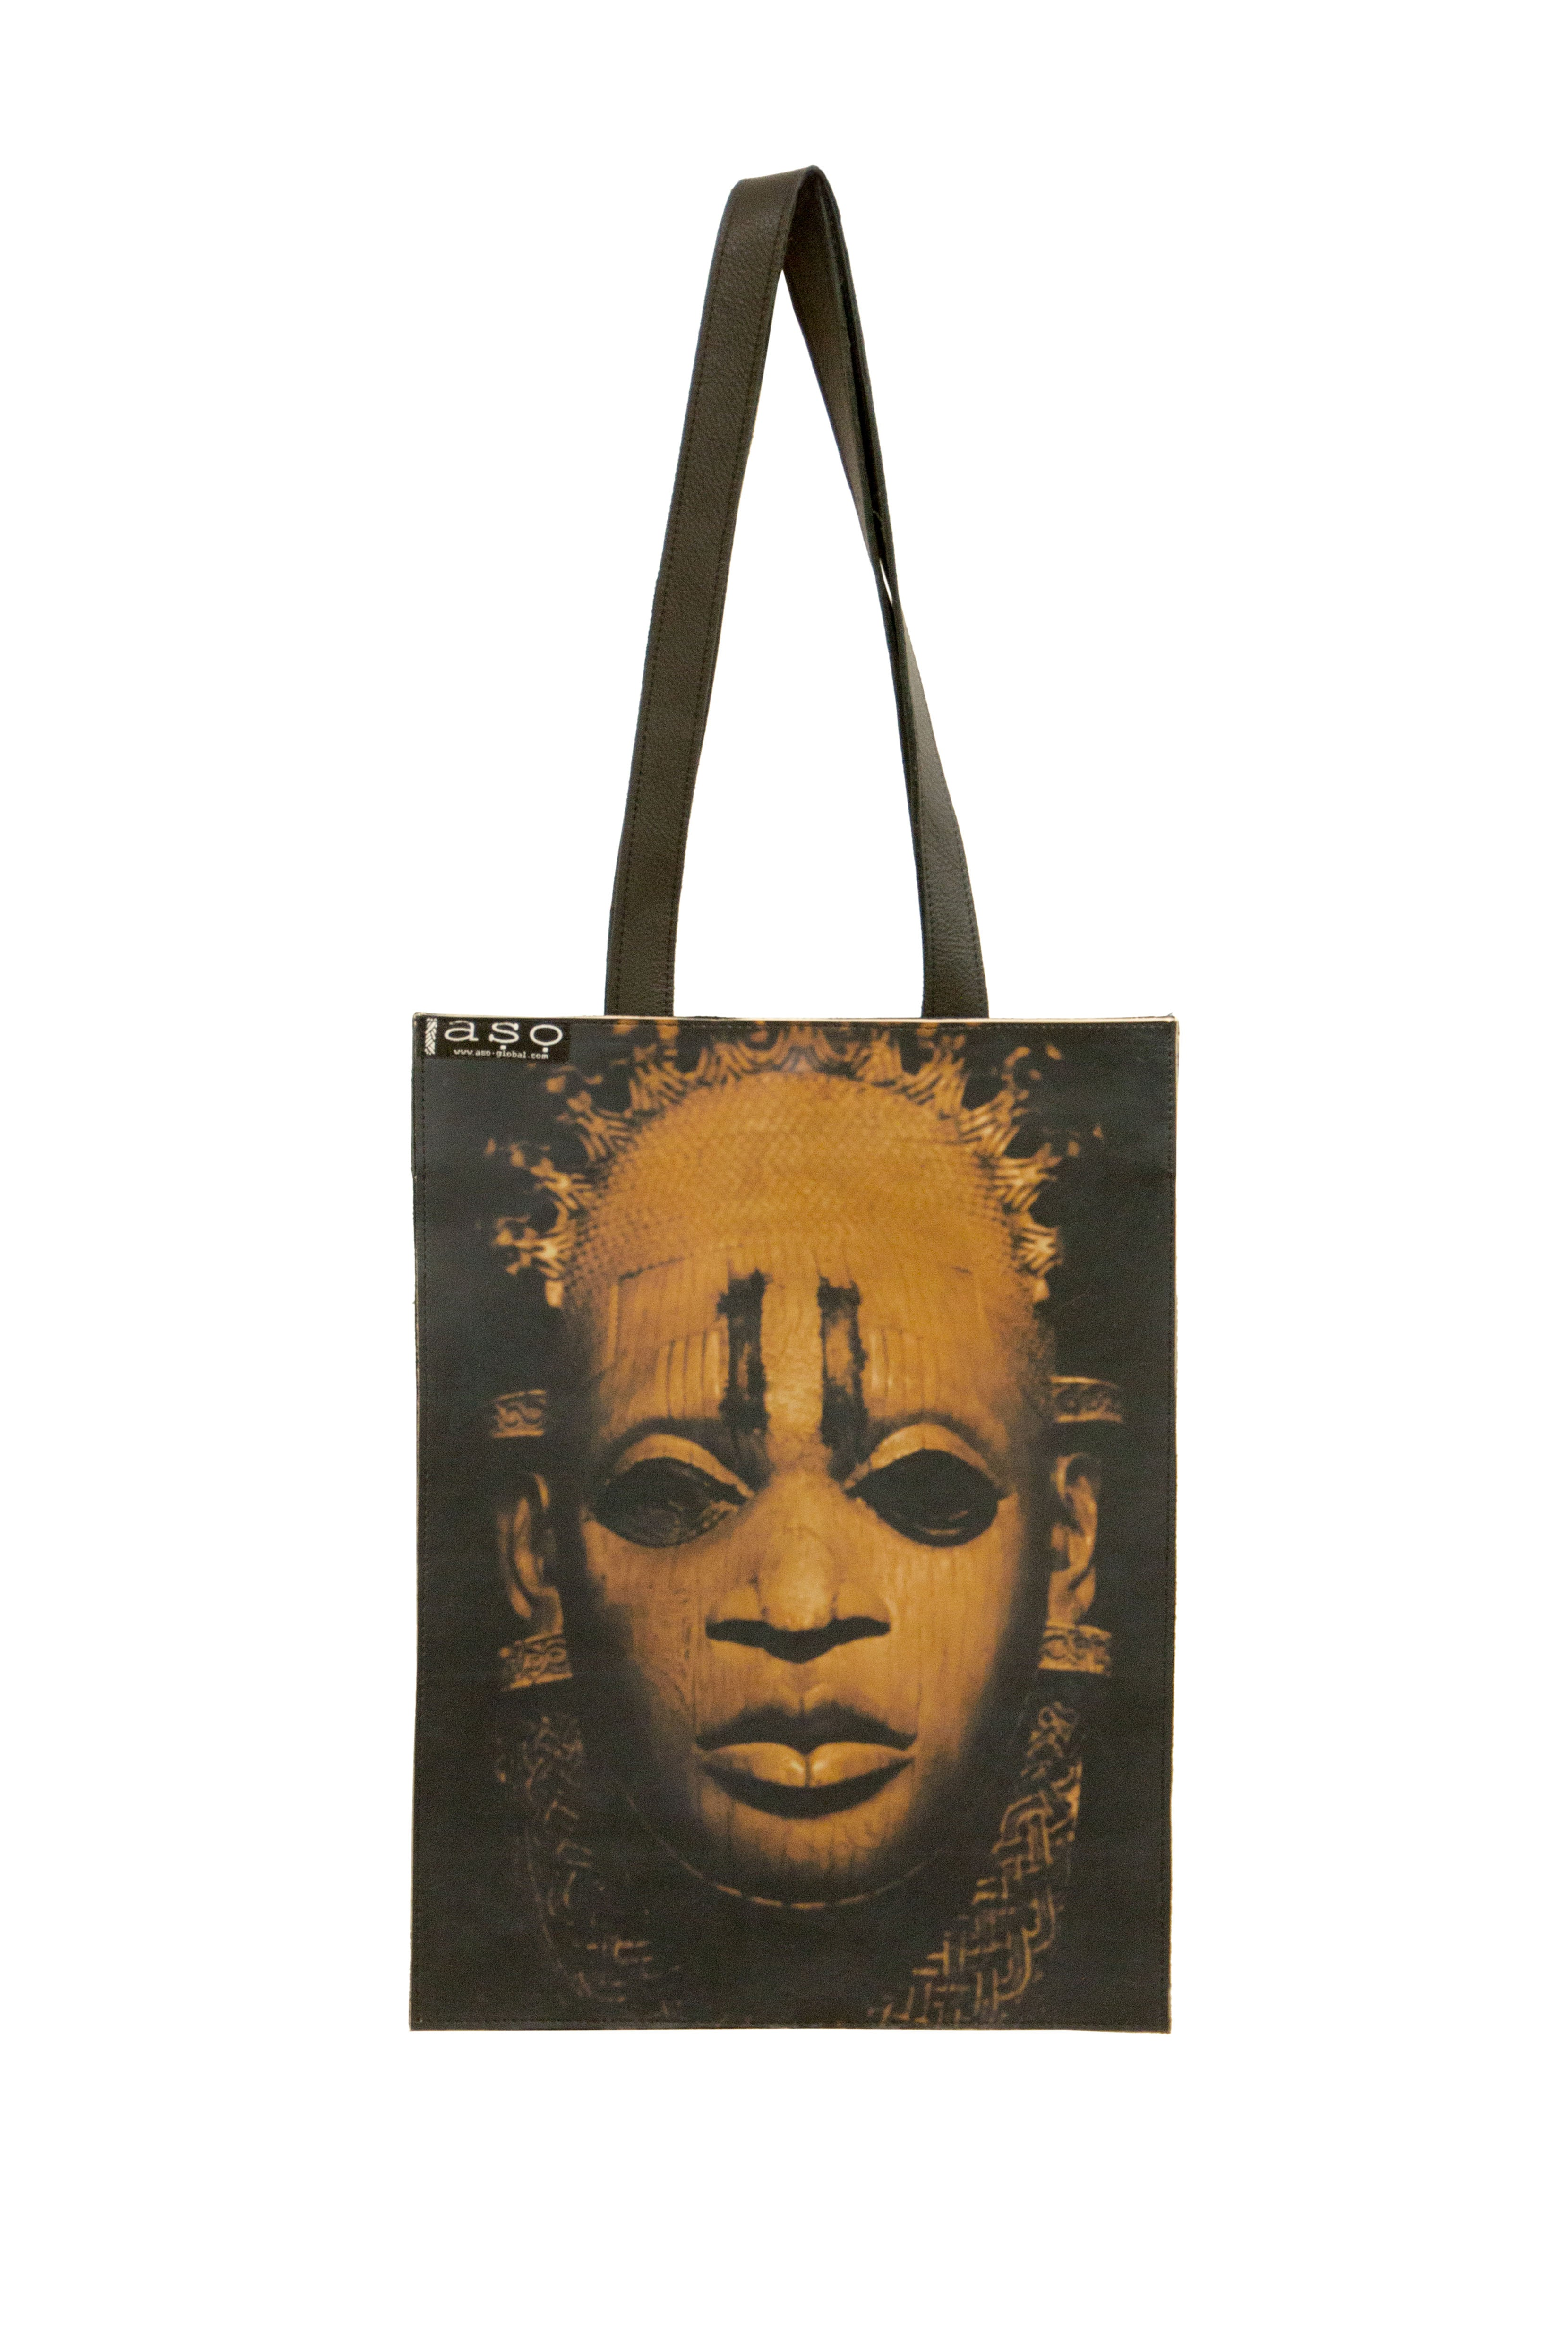 Iyoba Idia Leather Shopper (Hand-Crafted)  (with gusset)